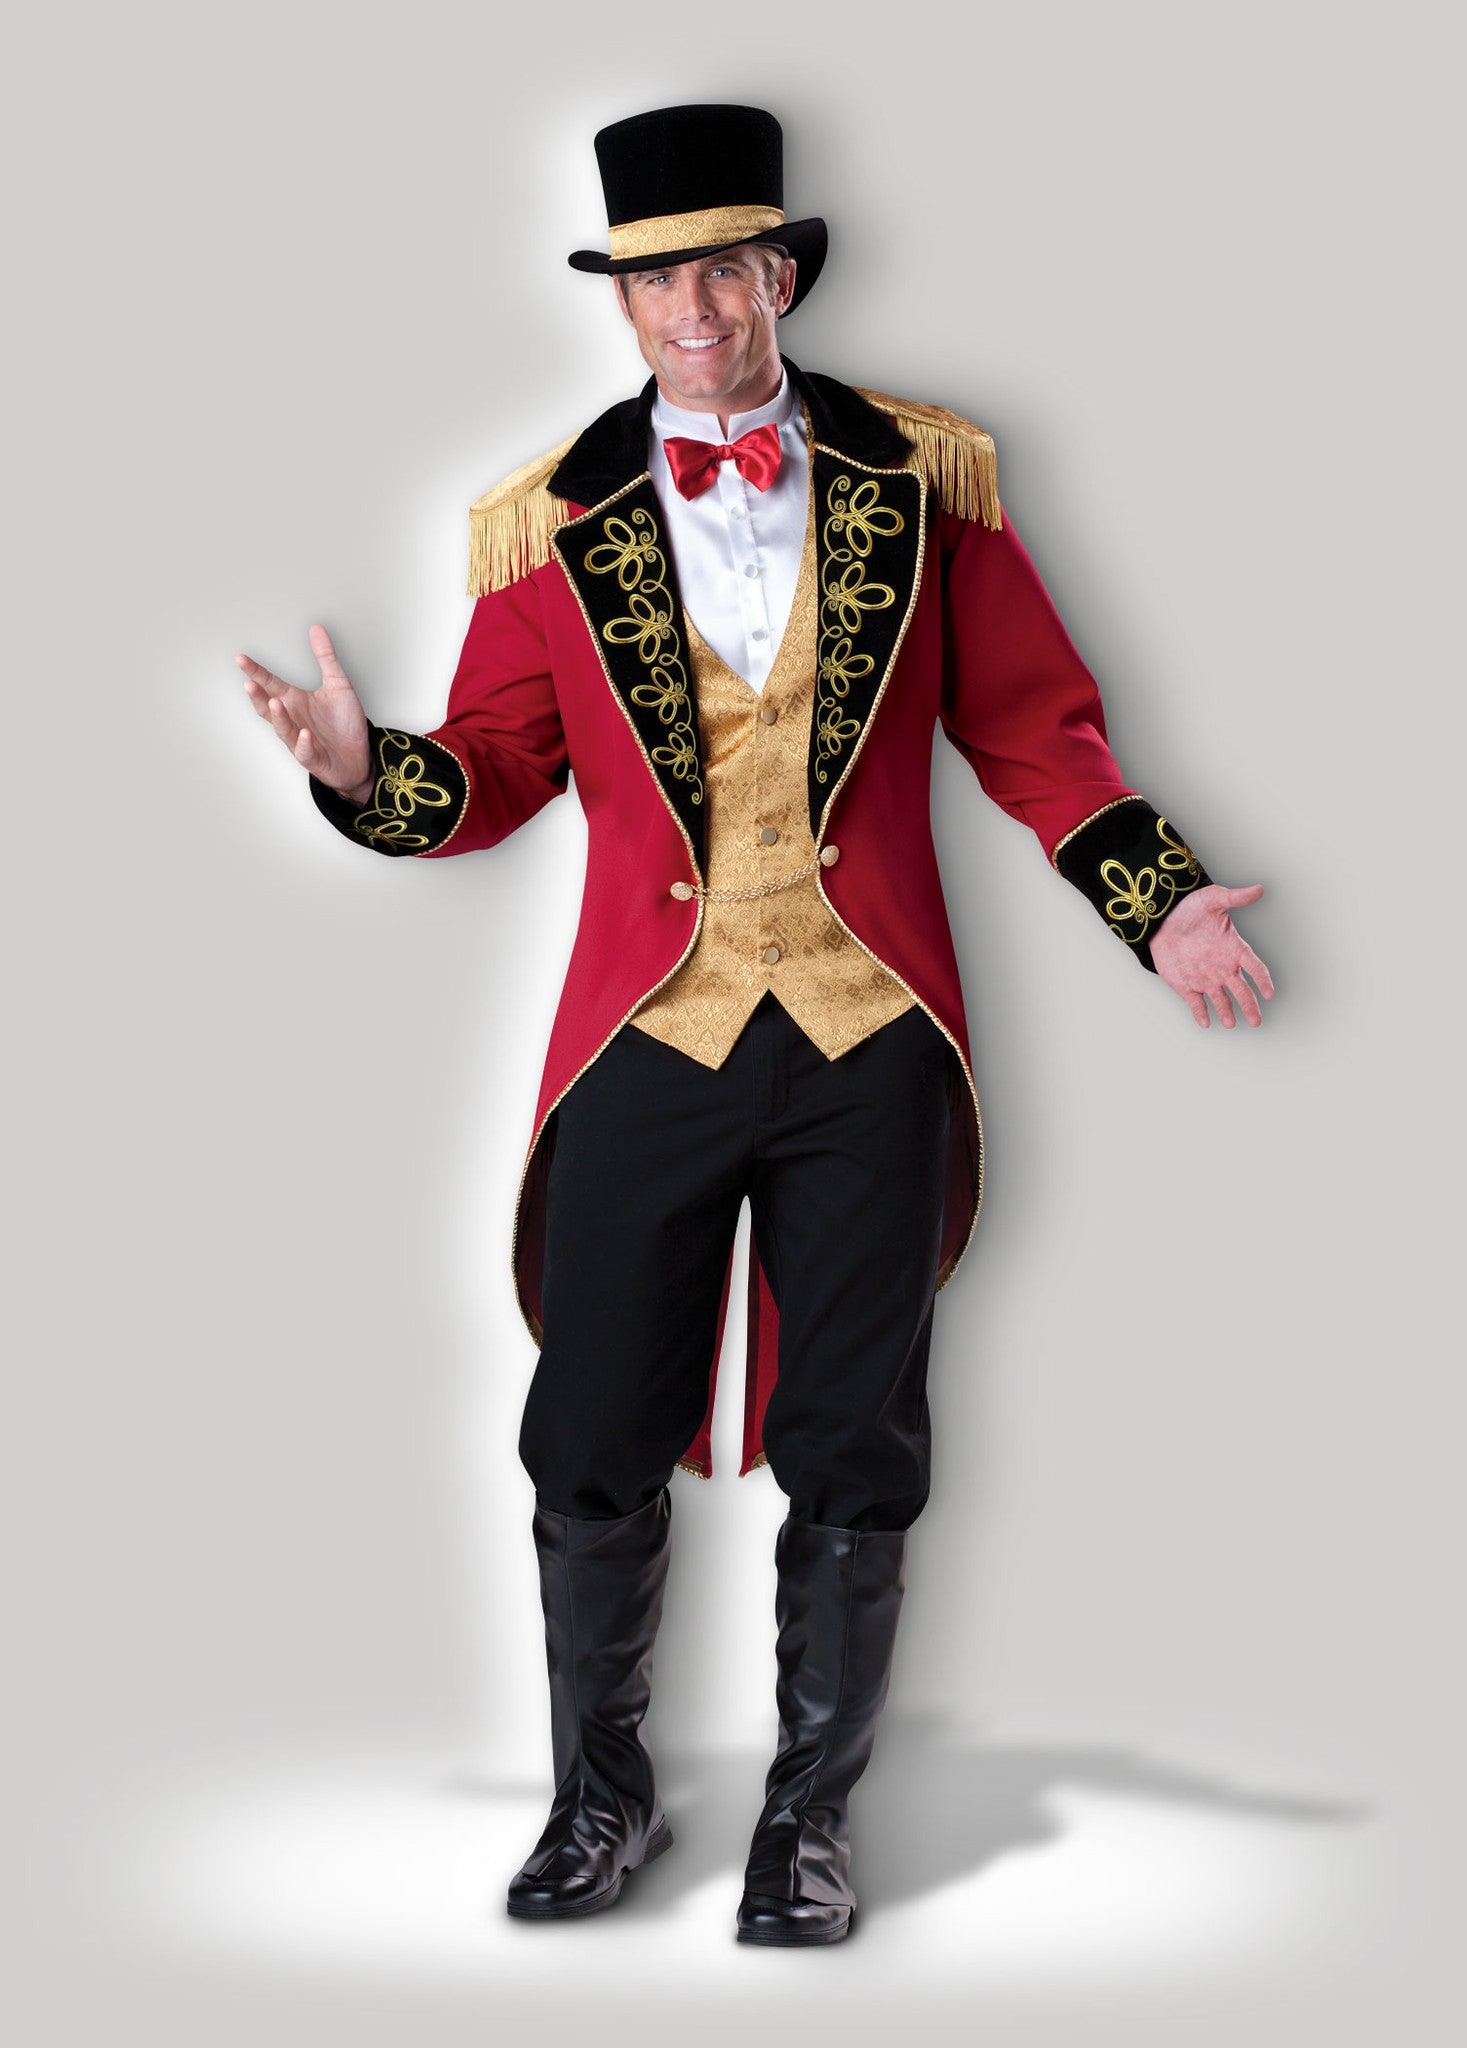 Ringmaster CM1092 & Ringmaster Deluxe Adult Costume u2013 InCharacter Costumes